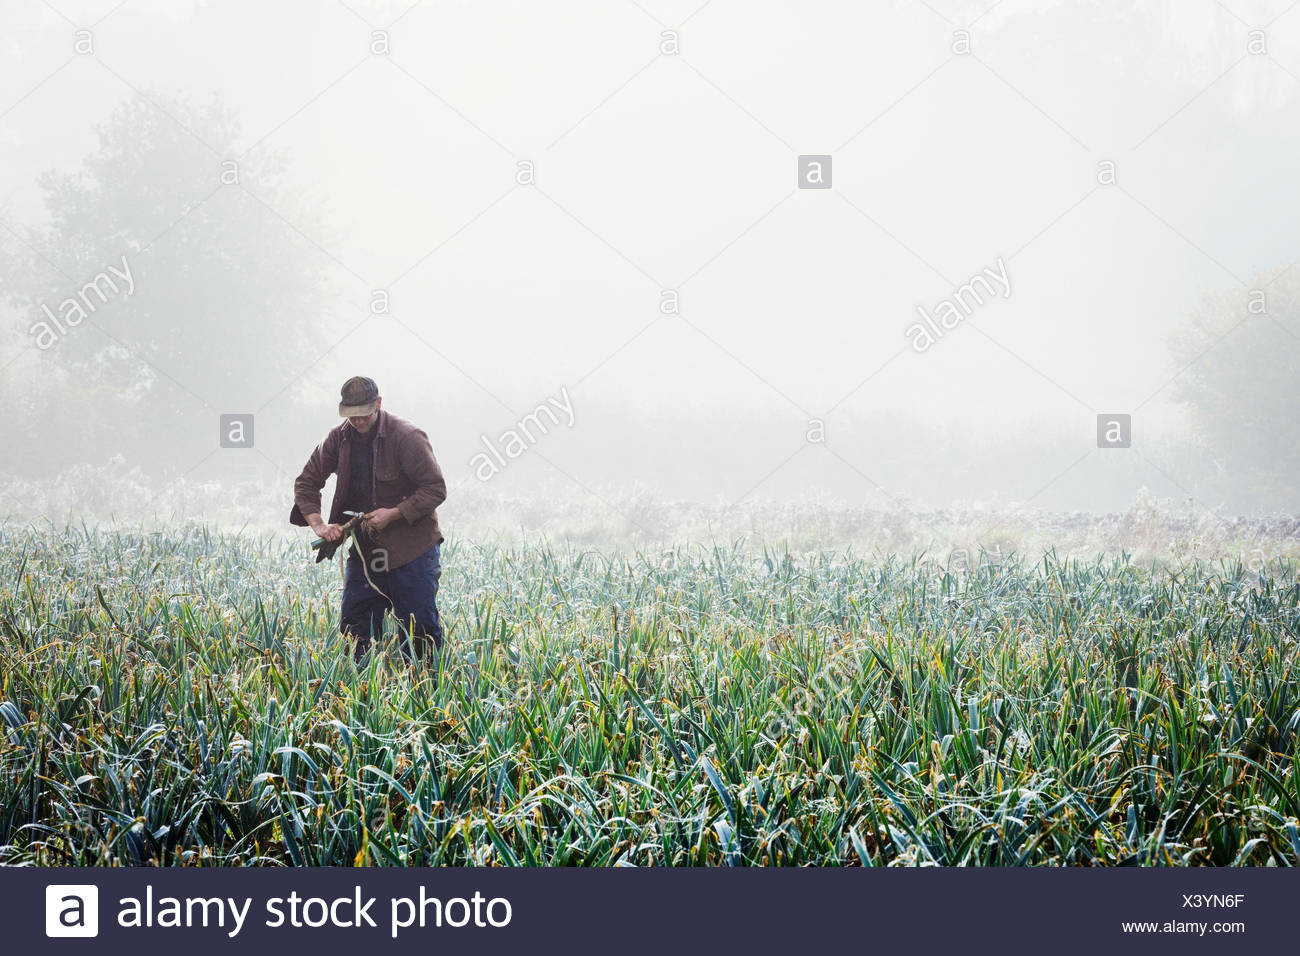 A man lifting and trimming organic leeks in a field, mist rising from the ground. - Stock Image